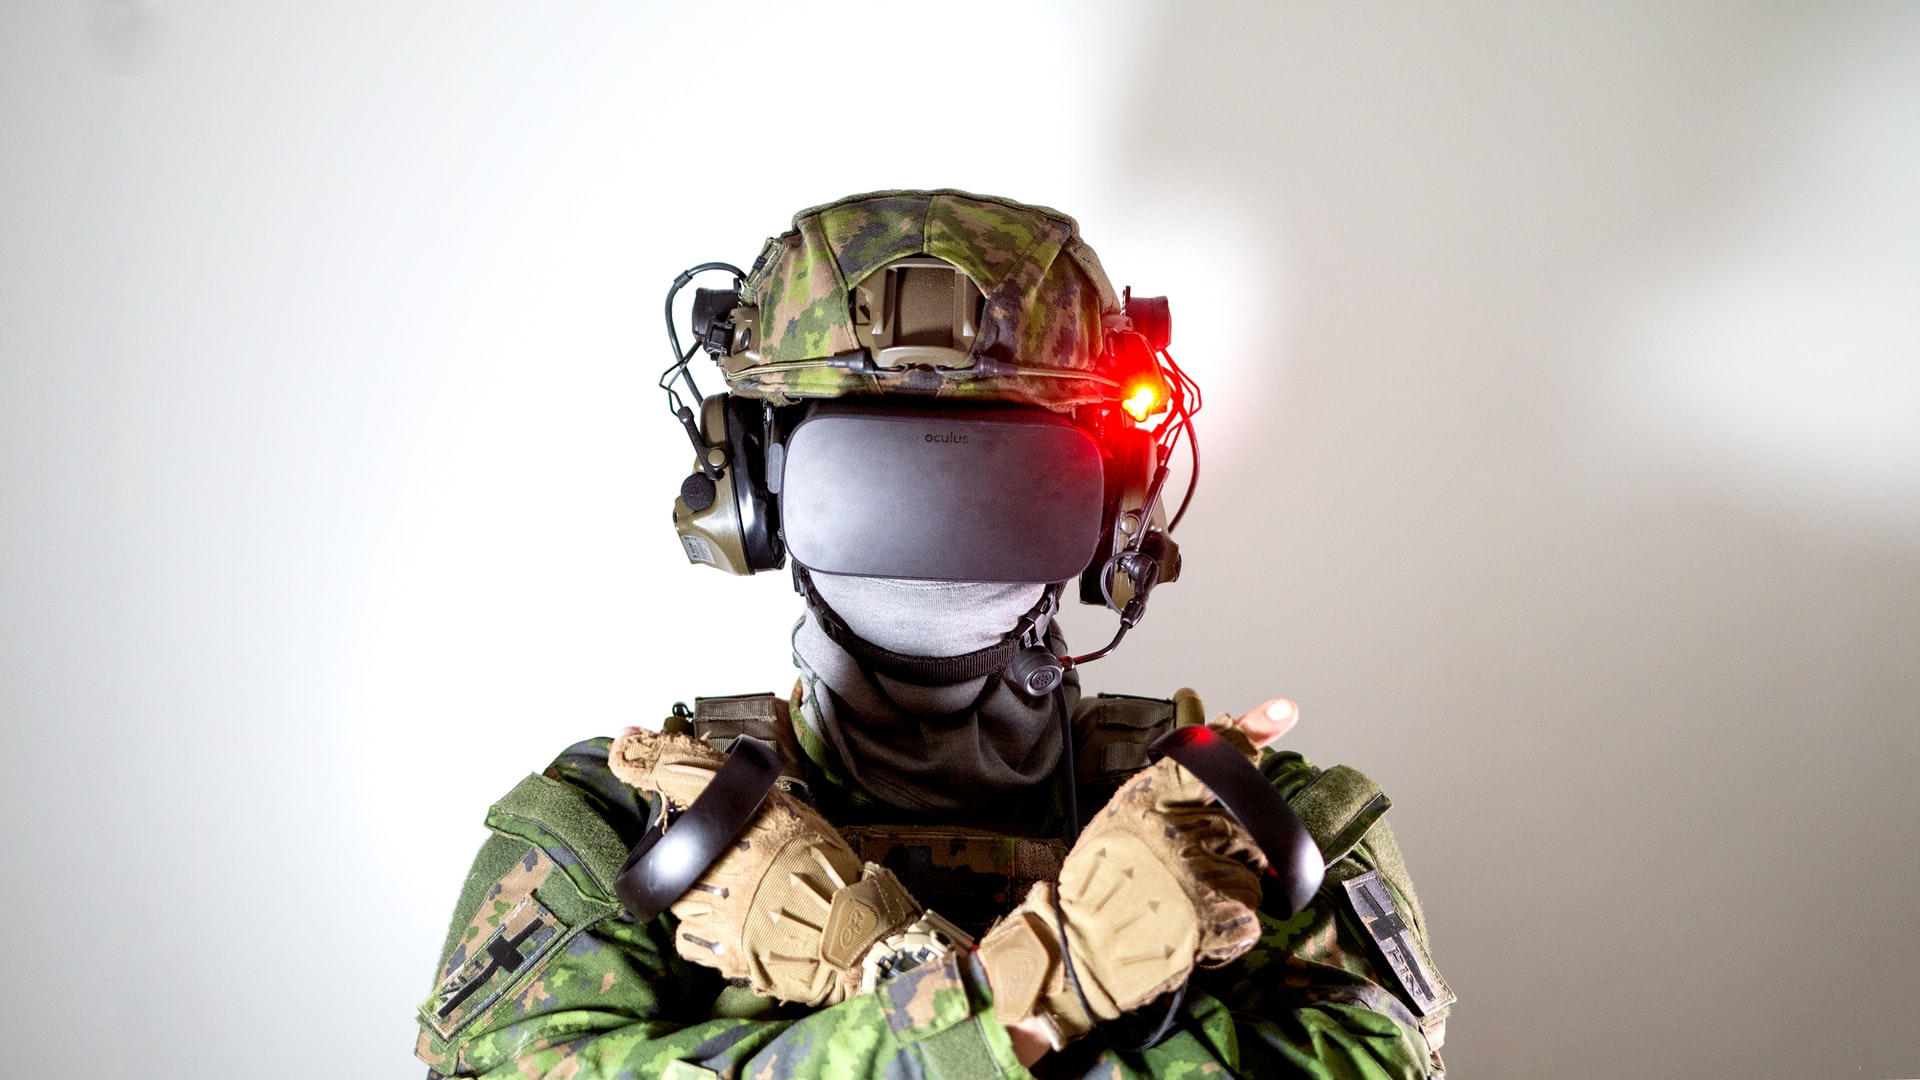 InVeris Training Solutions to Introduce a New Immersive VR System at AUSA 2021